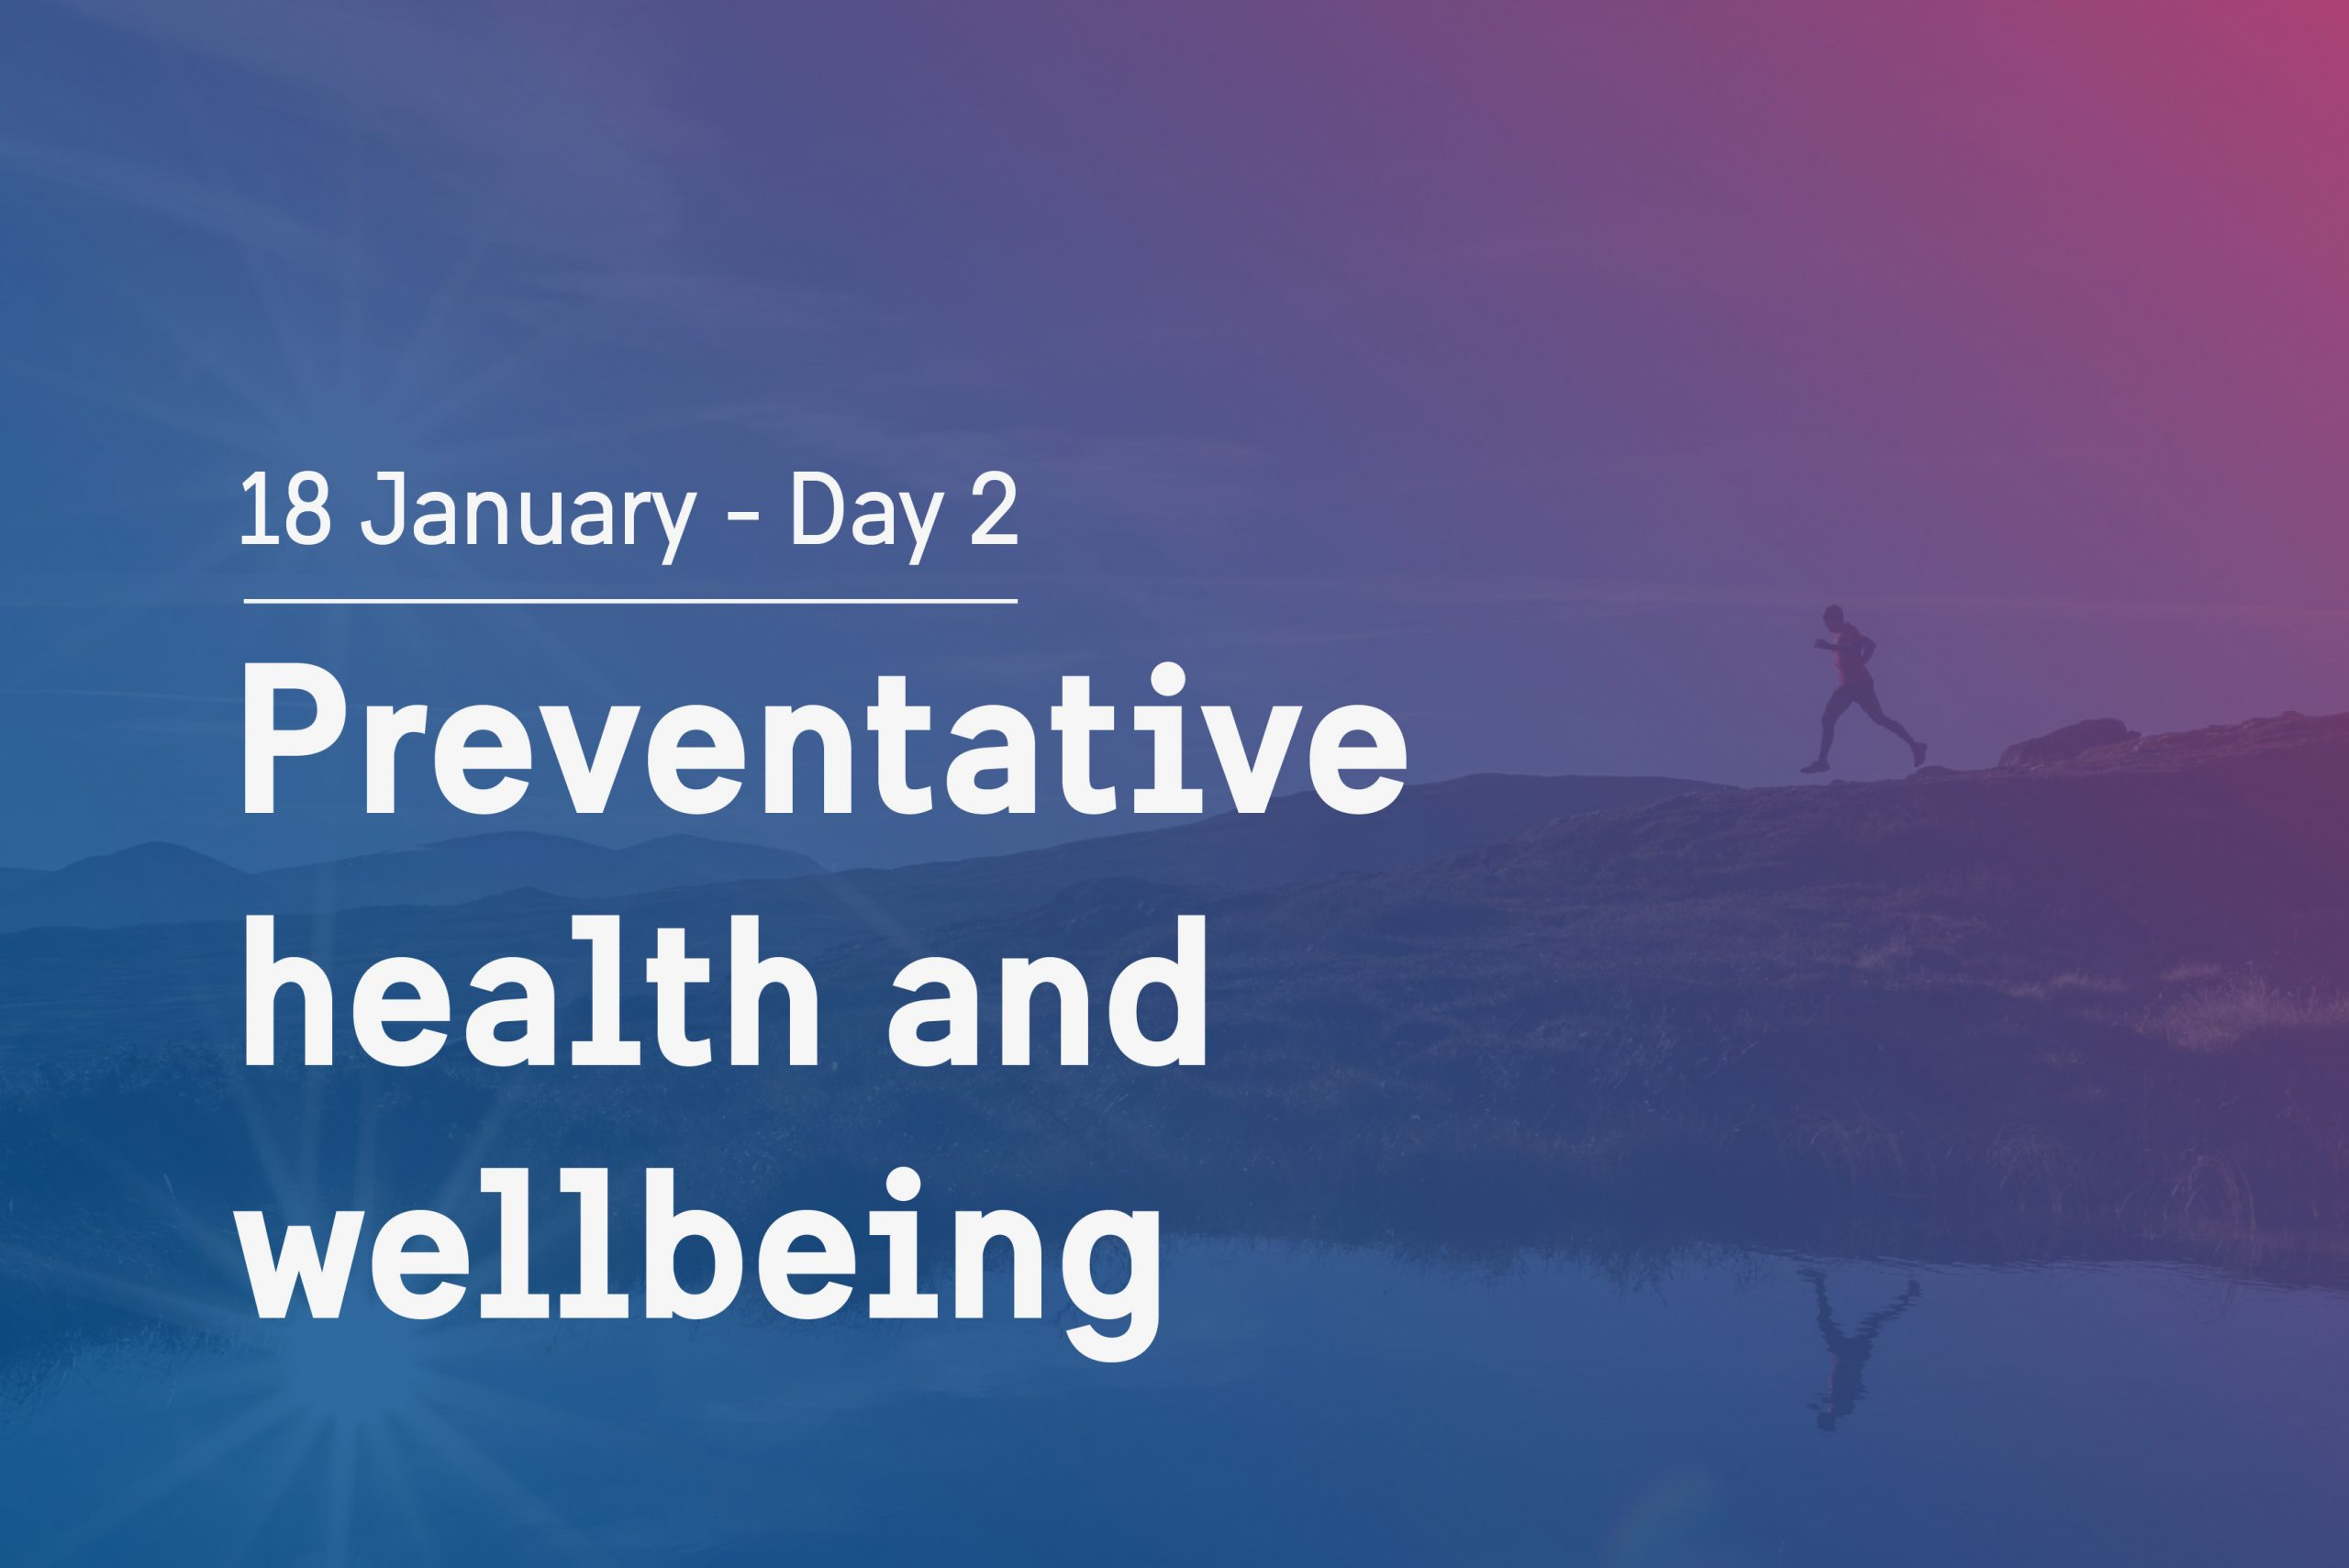 Day 2 theme: Preventative health and wellbeing